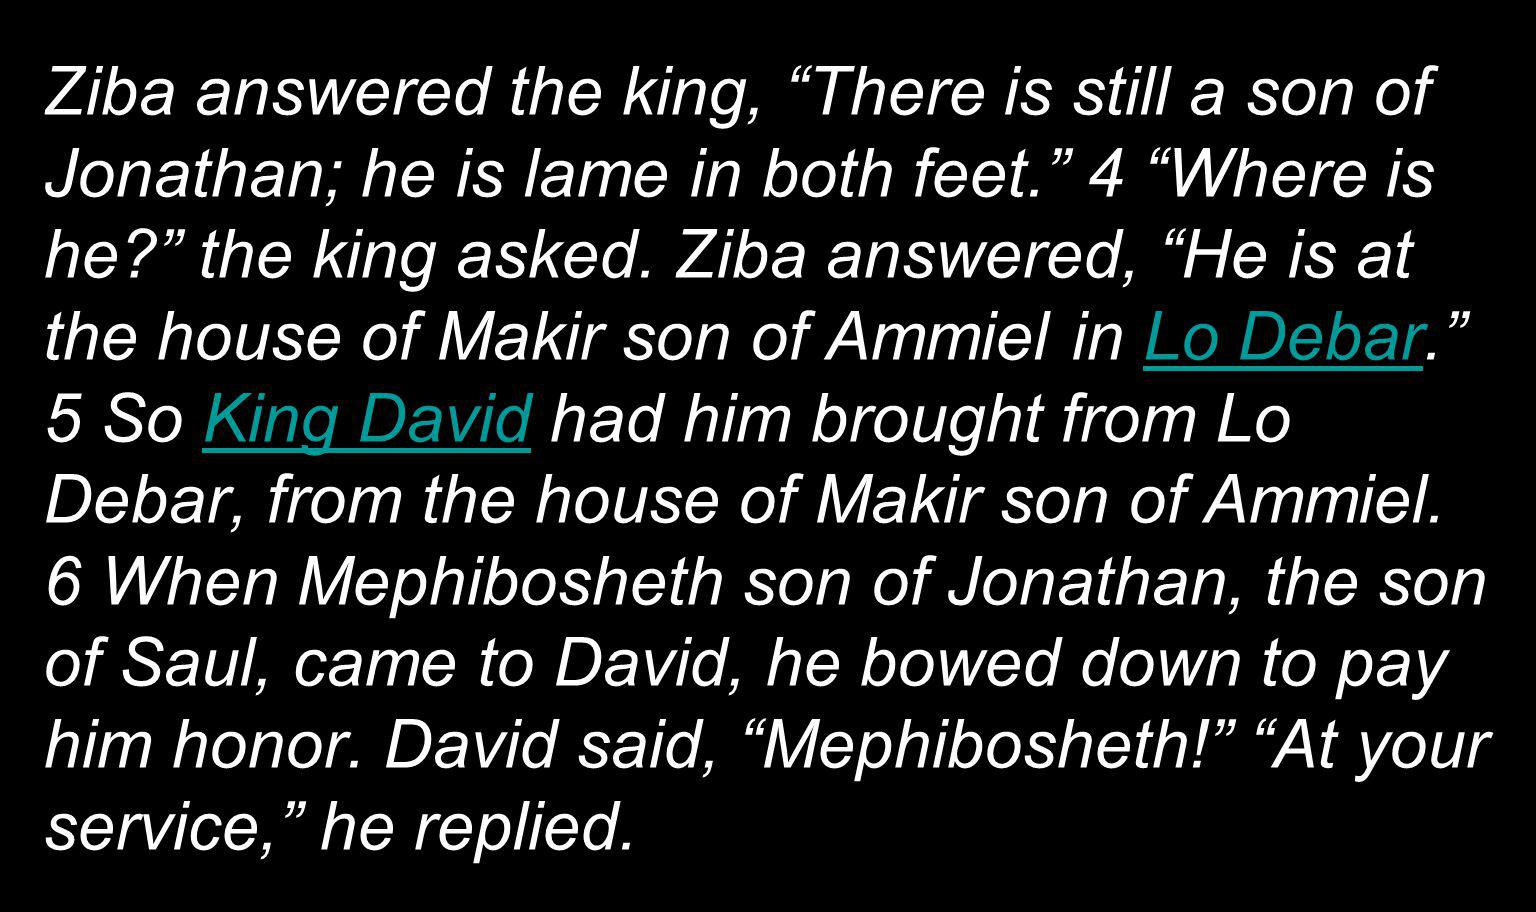 Ziba answered the king, There is still a son of Jonathan; he is lame in both feet. 4 Where is he the king asked.